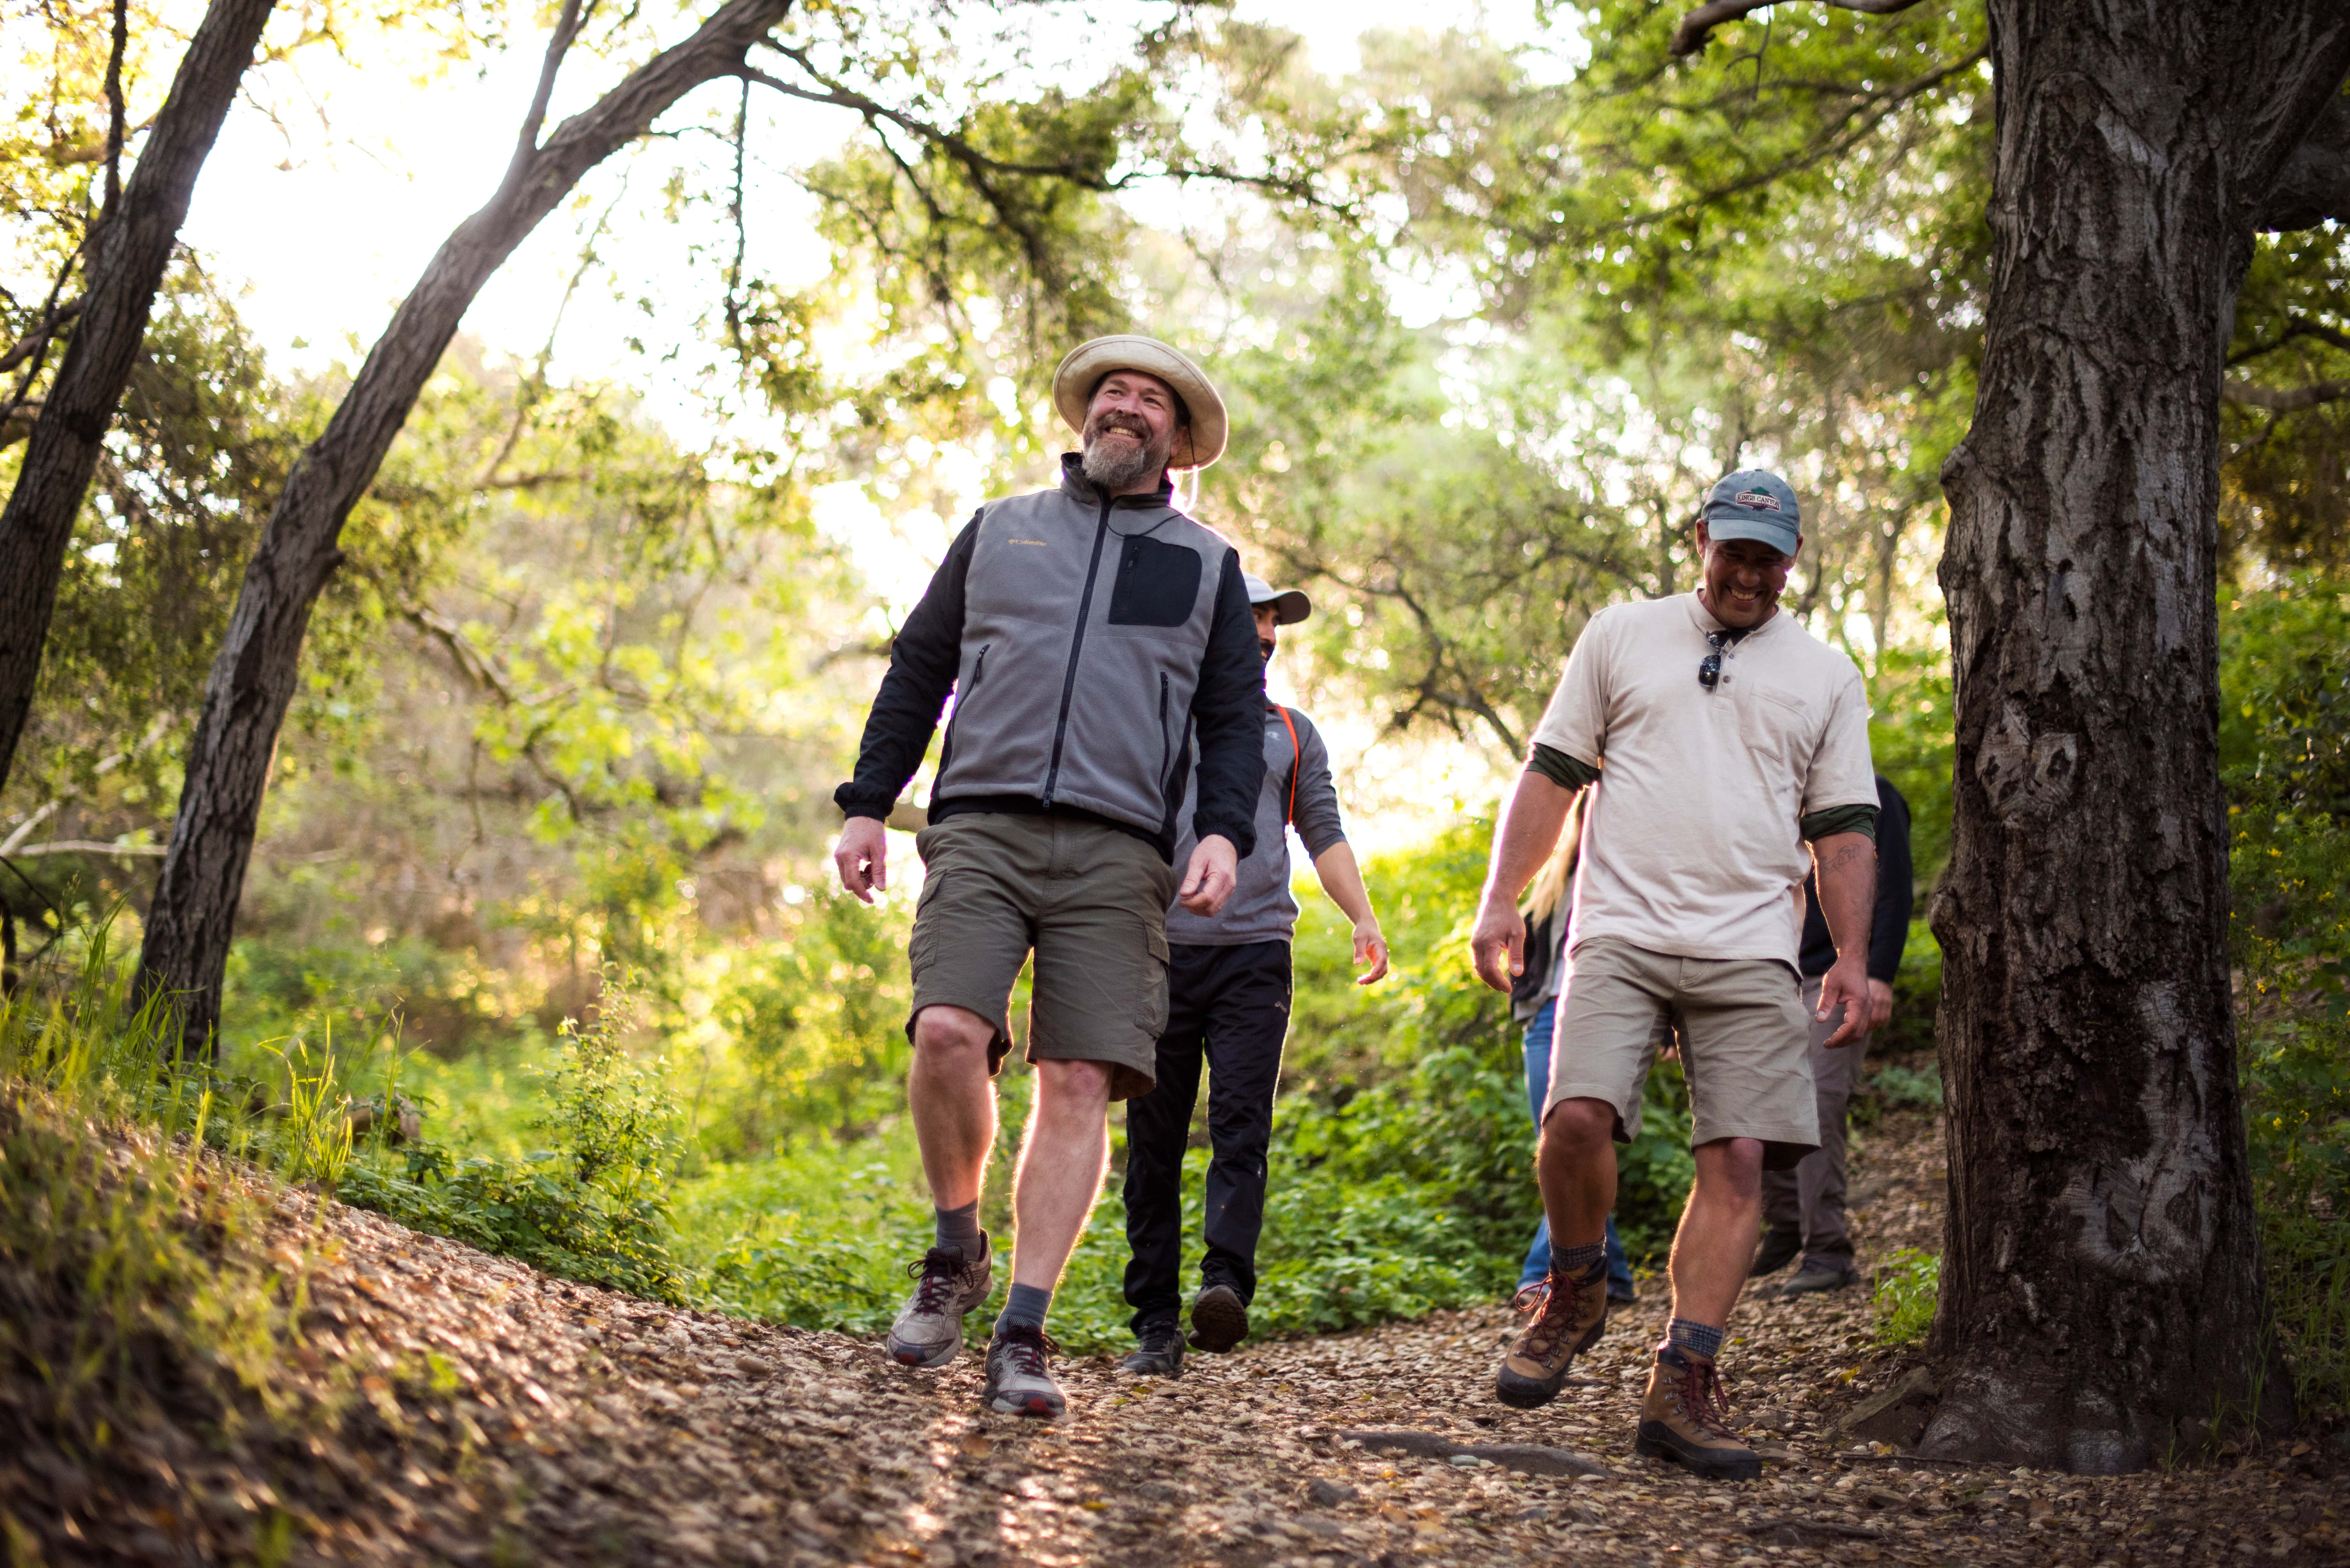 Photo of four people hiking through a lush hiking path.